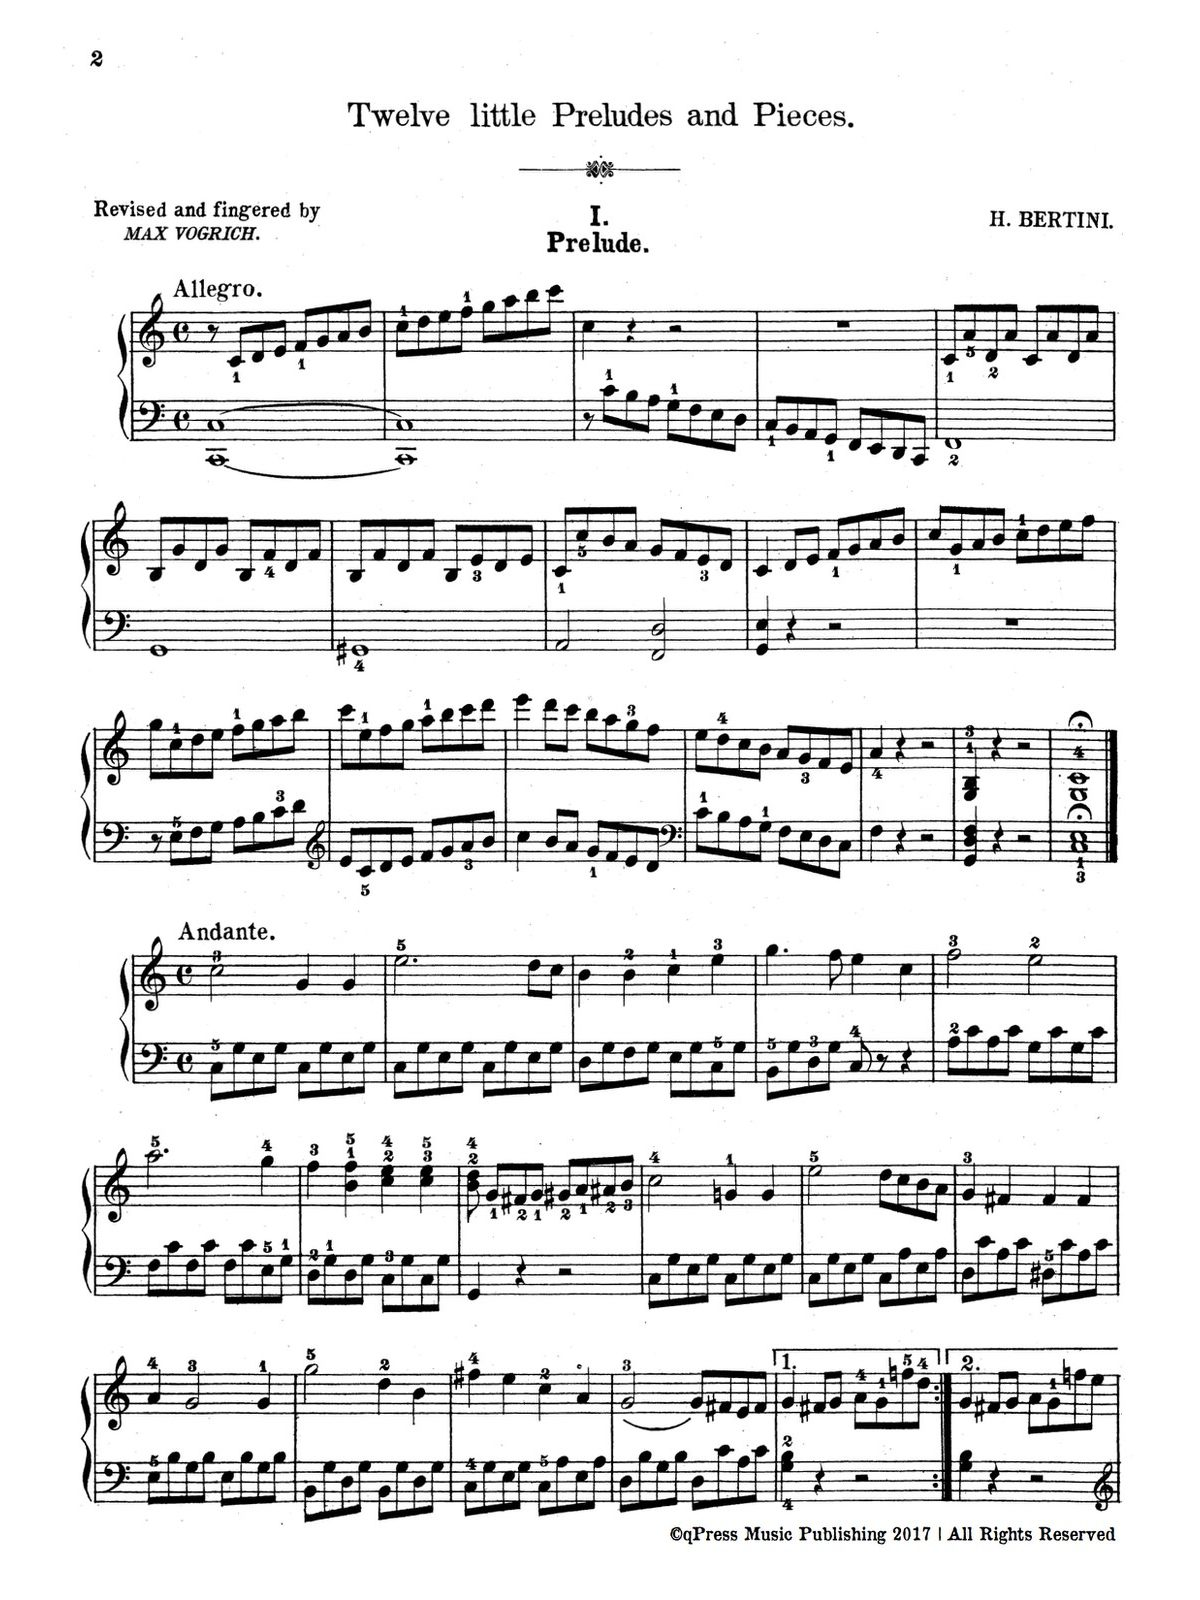 Bertini, 12 little Preludes and Pieces-p02